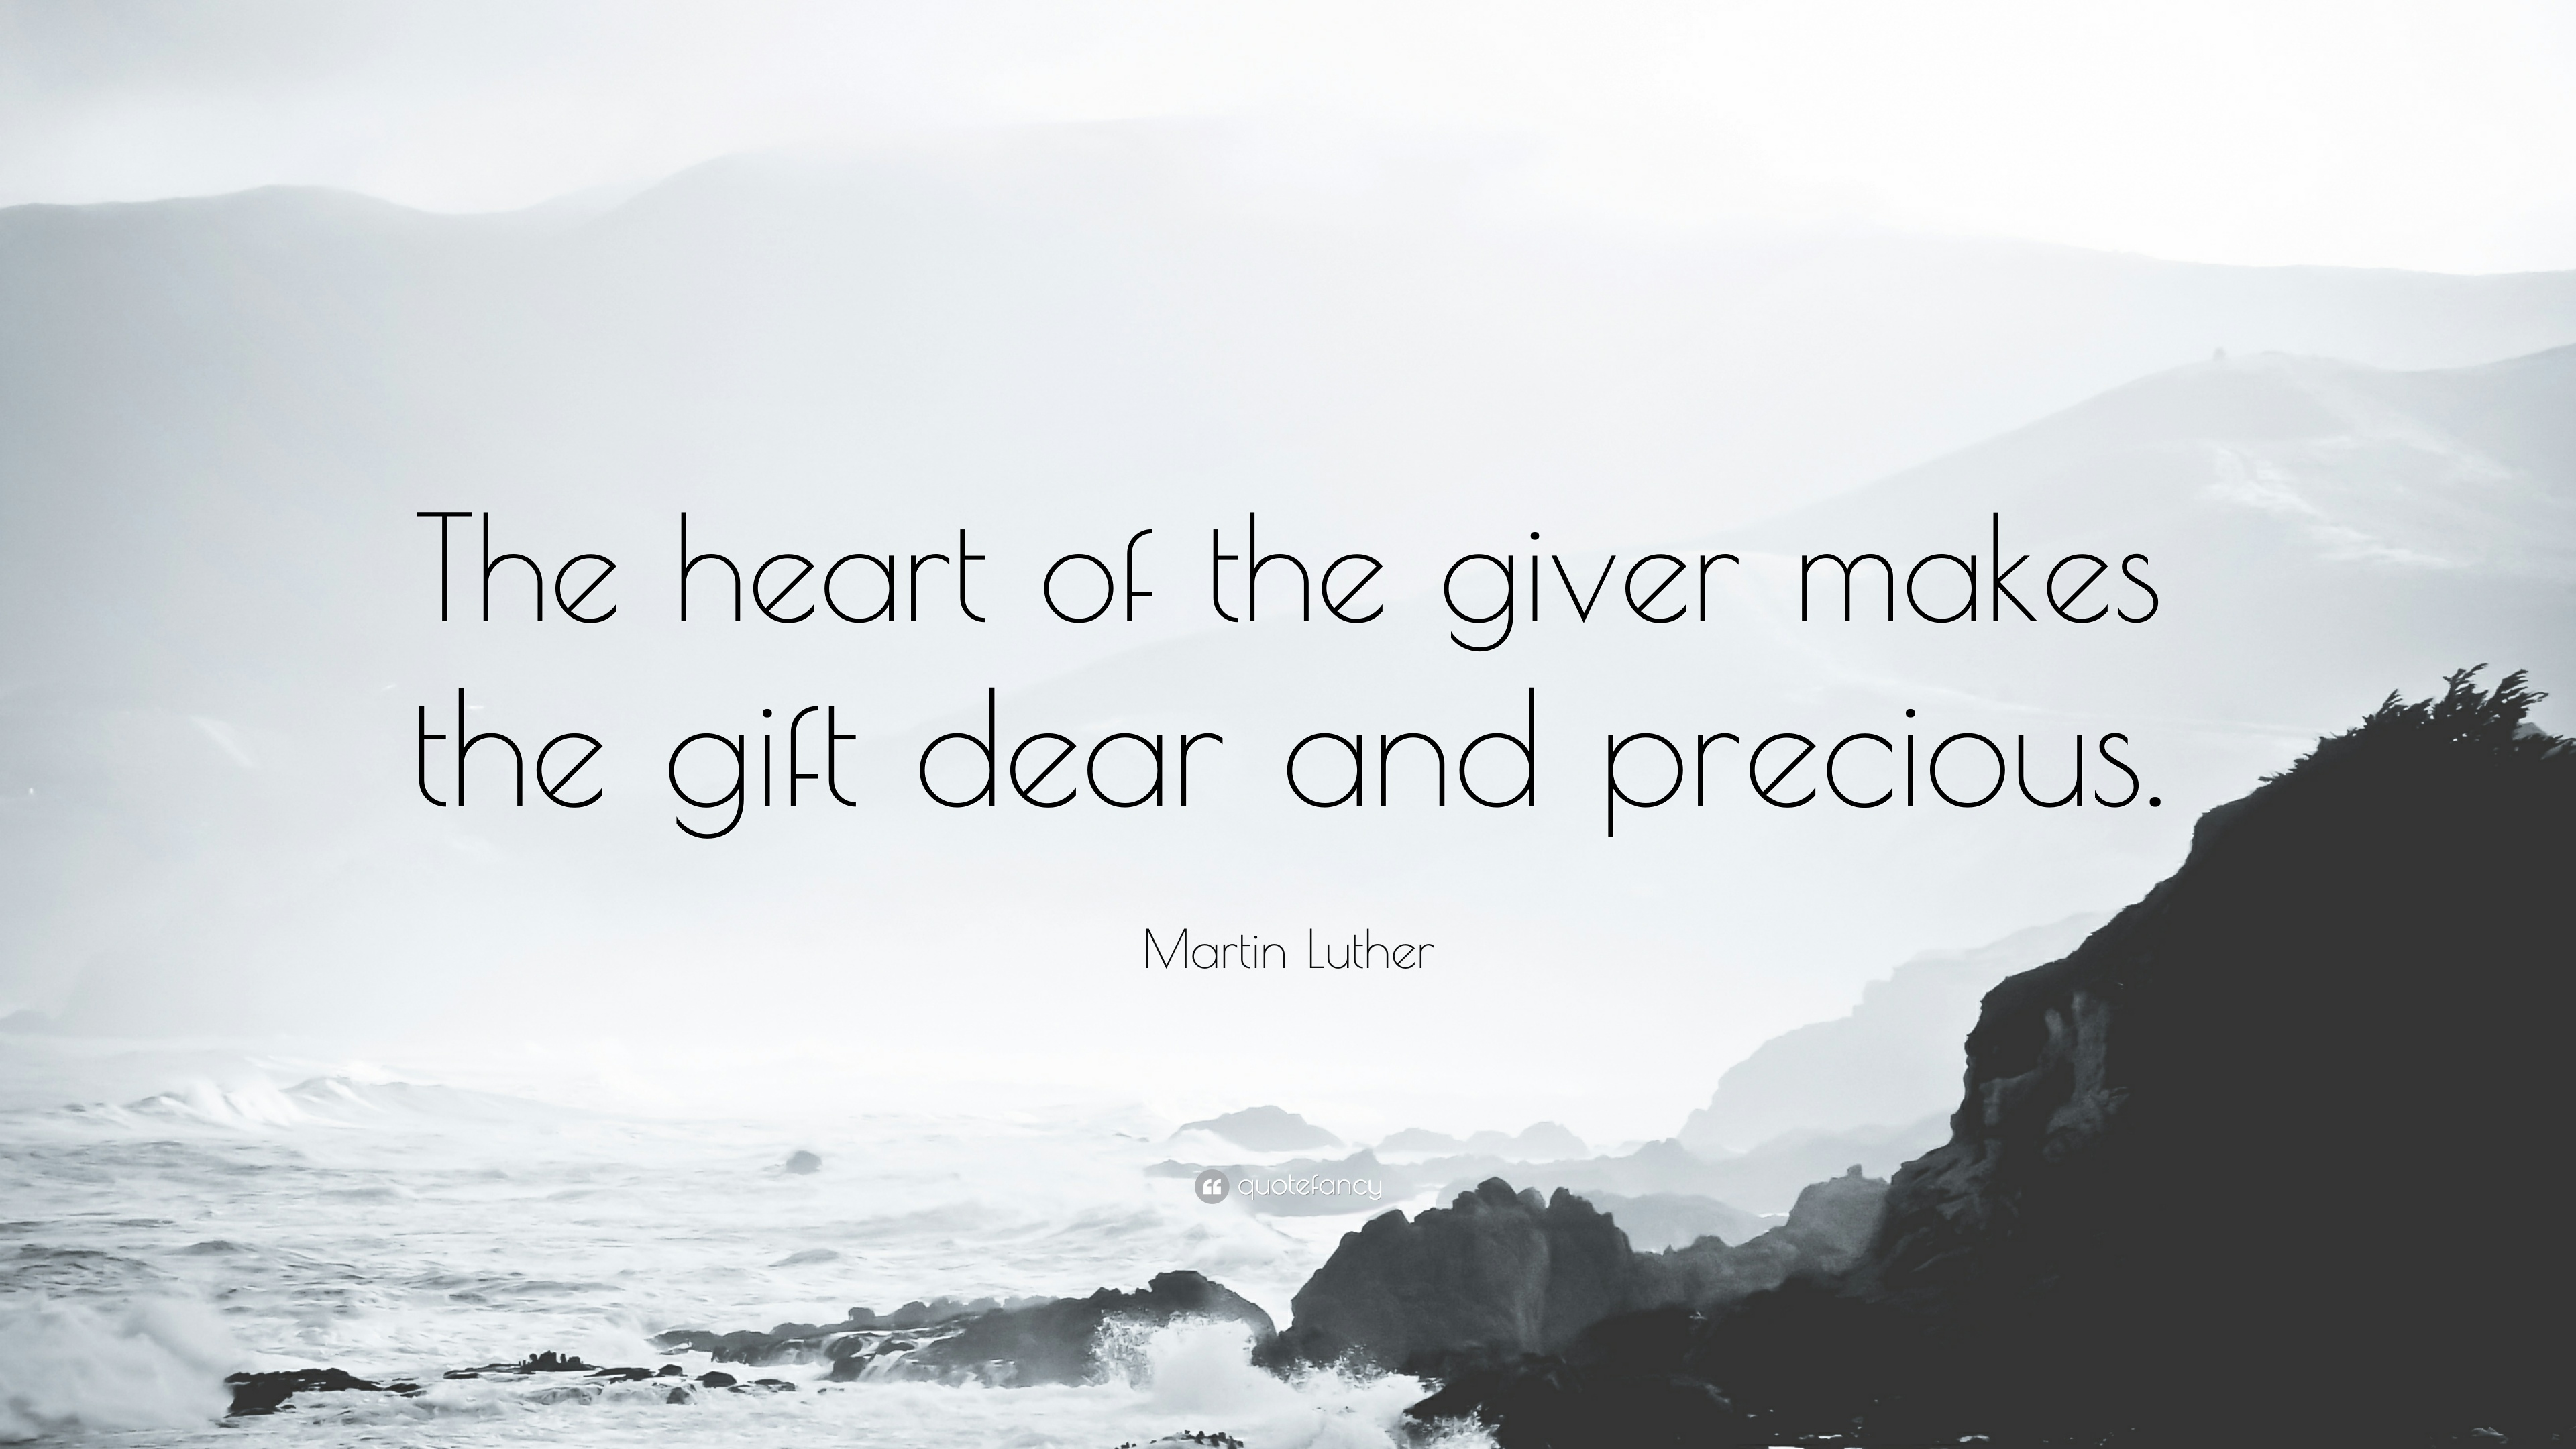 Martin Luther Quote The Heart Of The Giver Makes The Gift Dear And